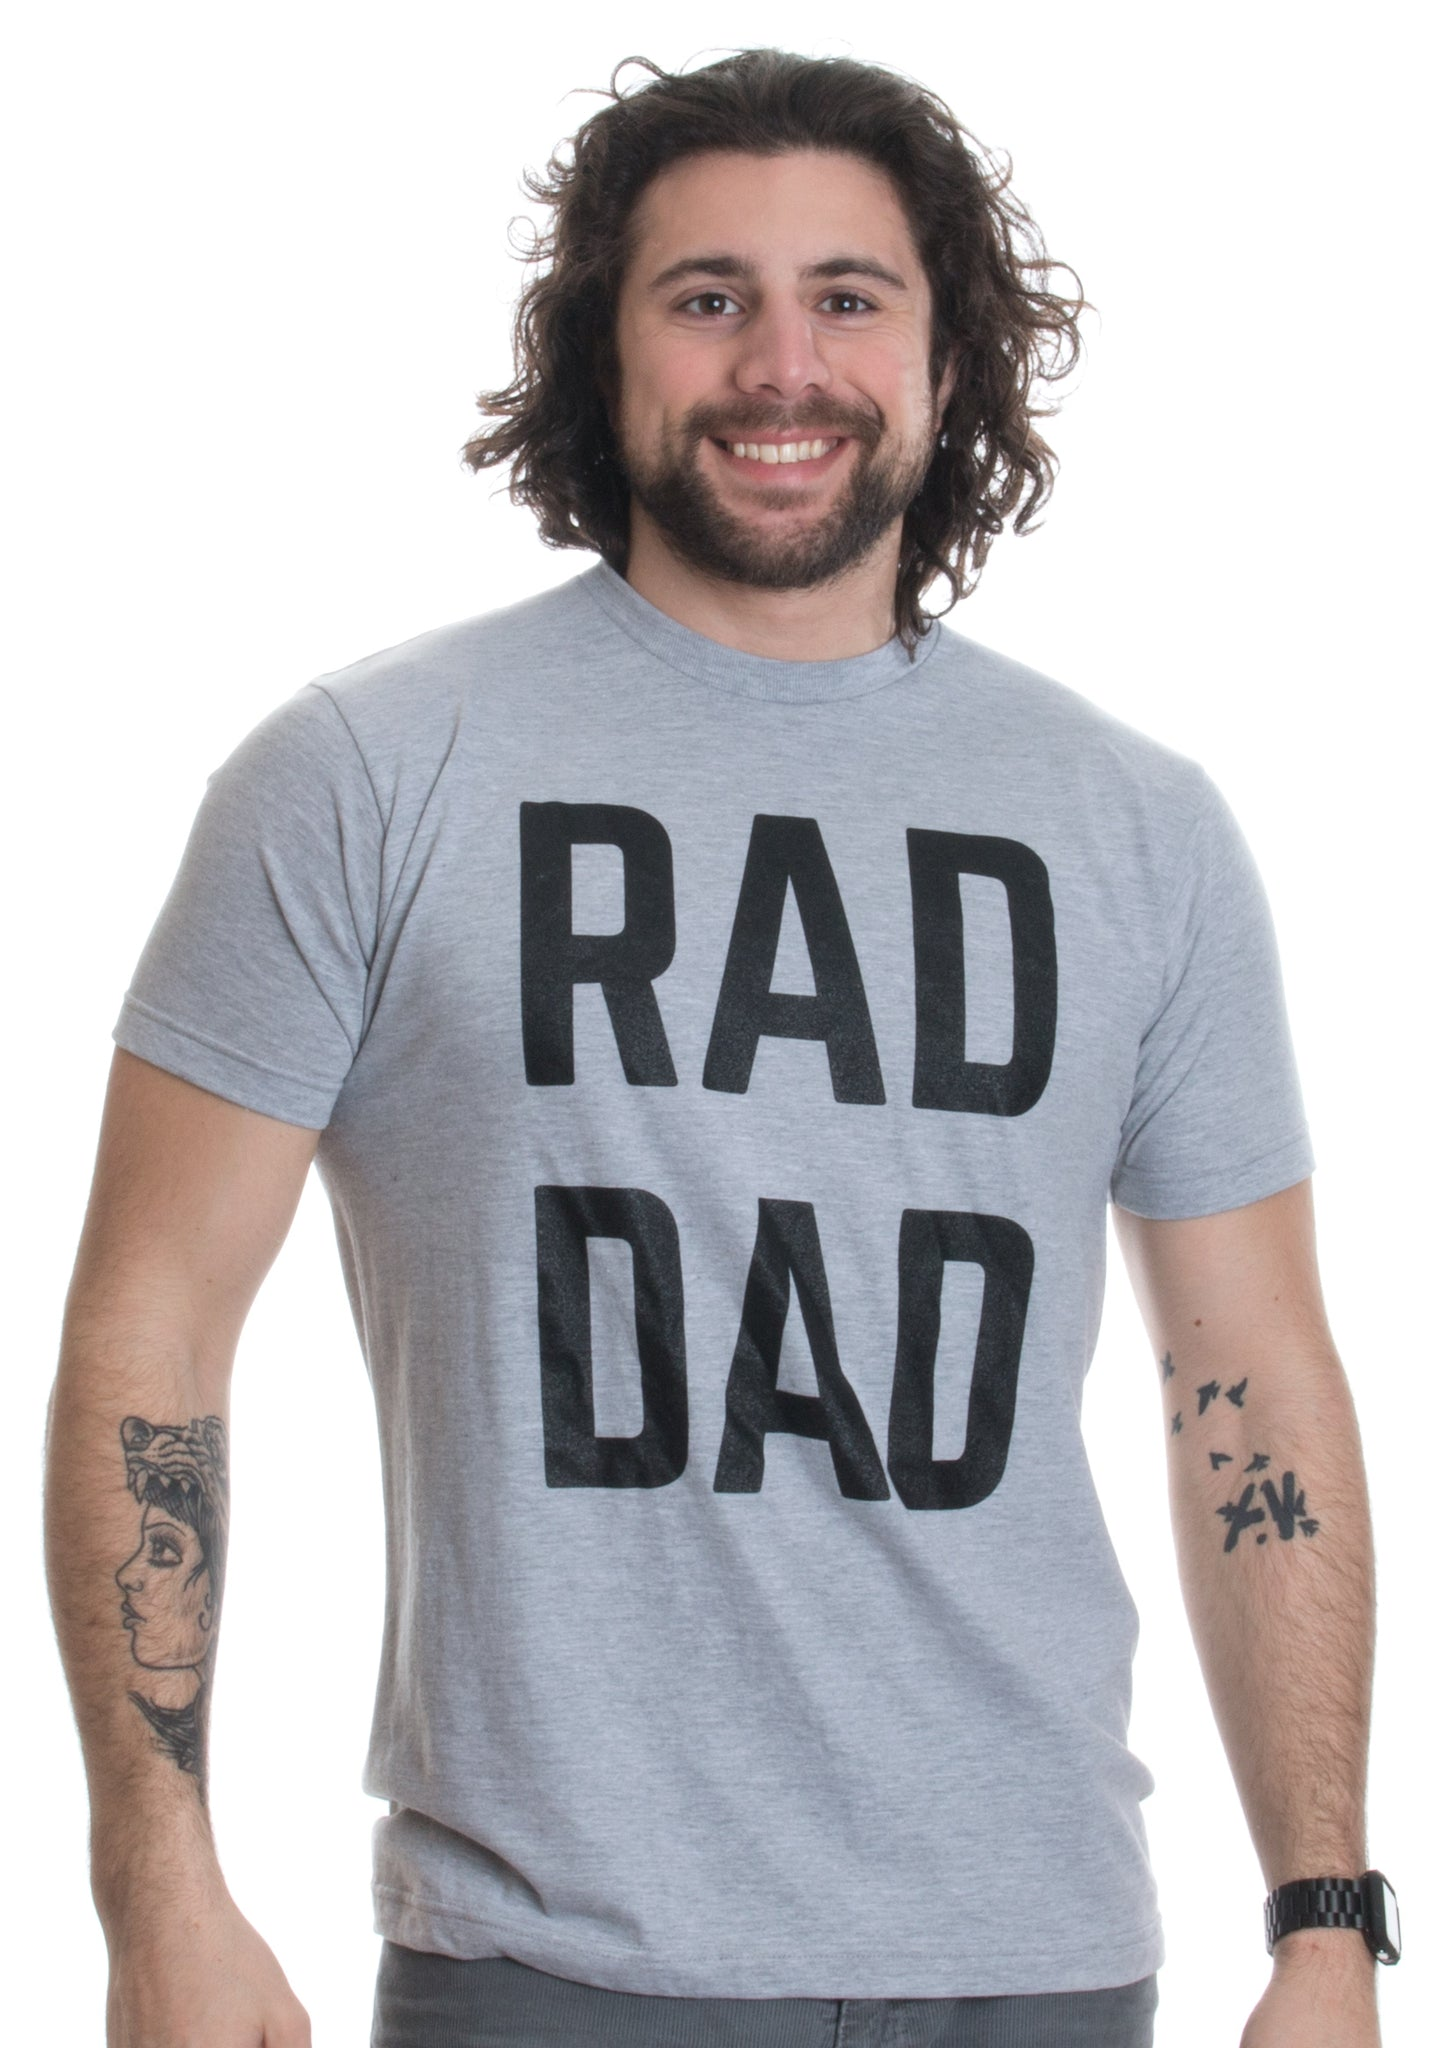 8858509d1 ... RAD DAD | Funny Cool Dad Joke Humor, Daddy Father's Day Grandpa Fathers  T- ...